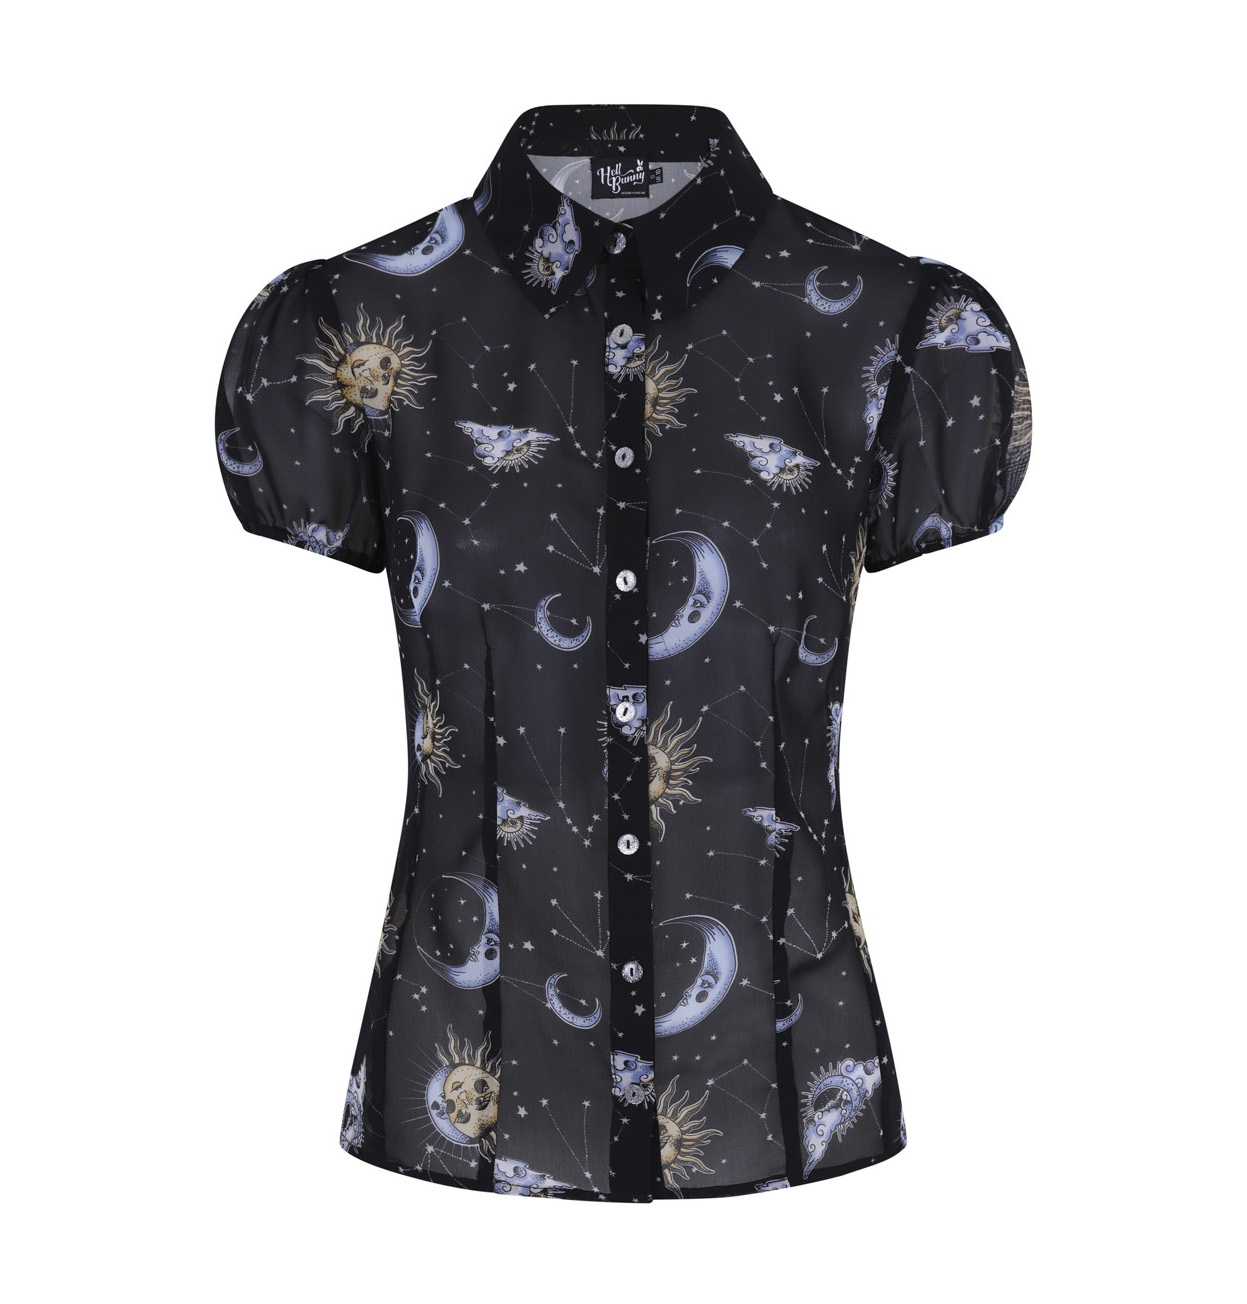 Hell-Bunny-50s-Shirt-Top-Gothic-Black-Sun-Moon-Stars-SOLARIS-Blouse-All-Sizes thumbnail 29